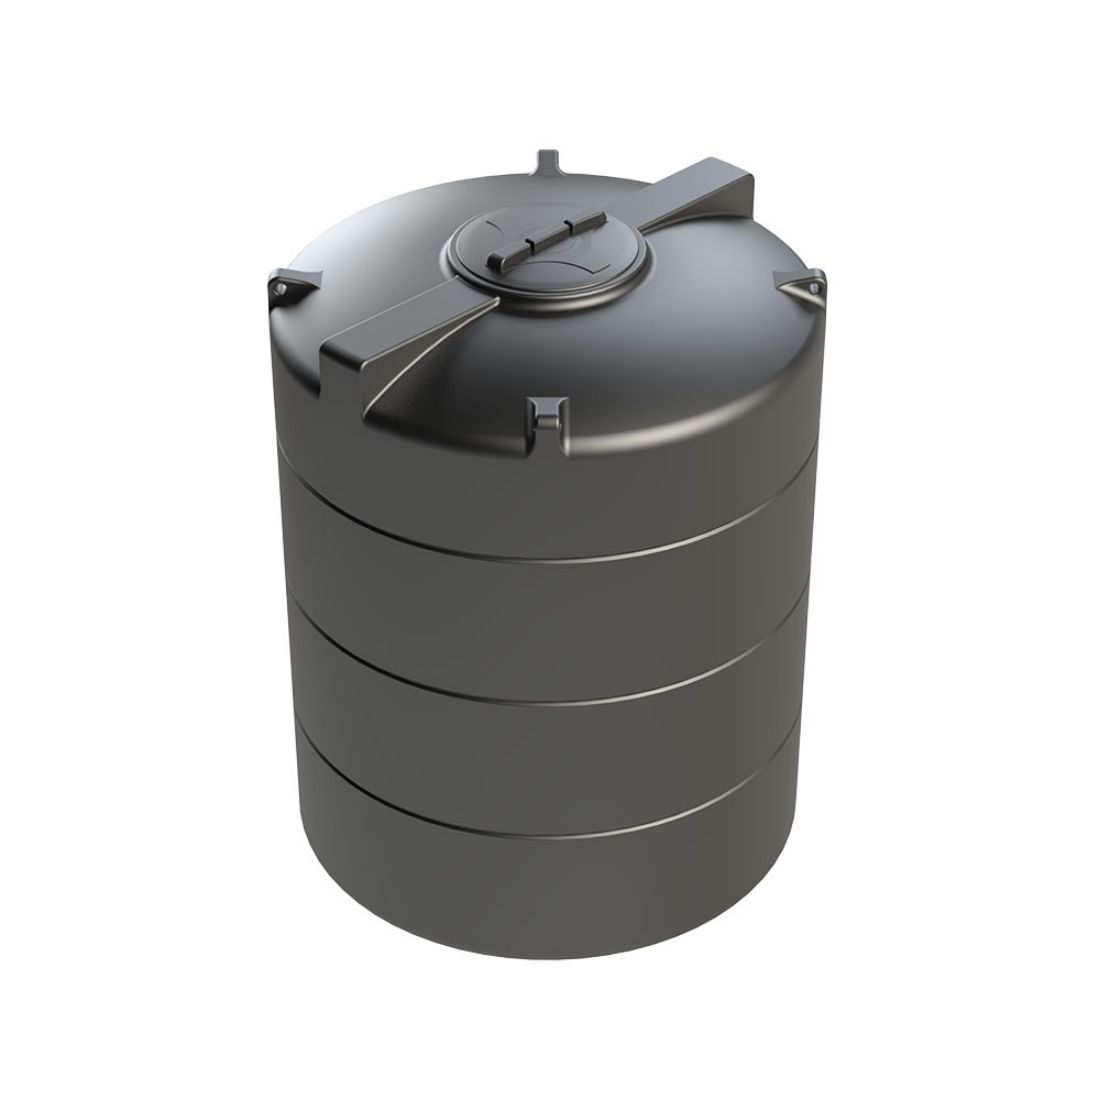 Enduramaxx 2,500 Litre Vertical Potable WRAS Water Storage Tank